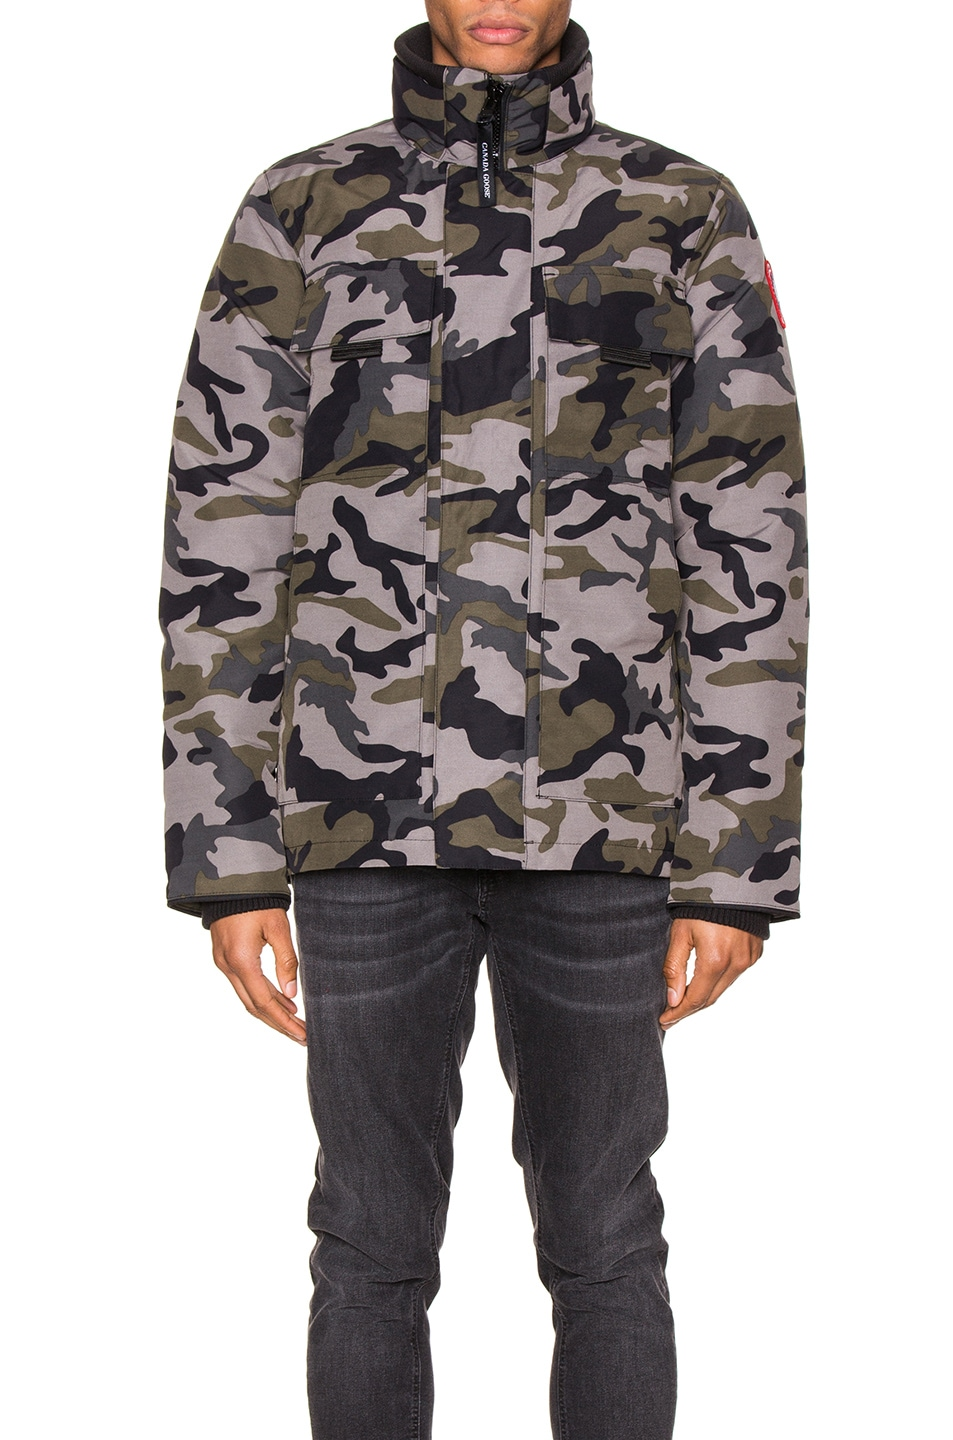 Image 2 of Canada Goose Forester Jacket in Coastal Grey Camo